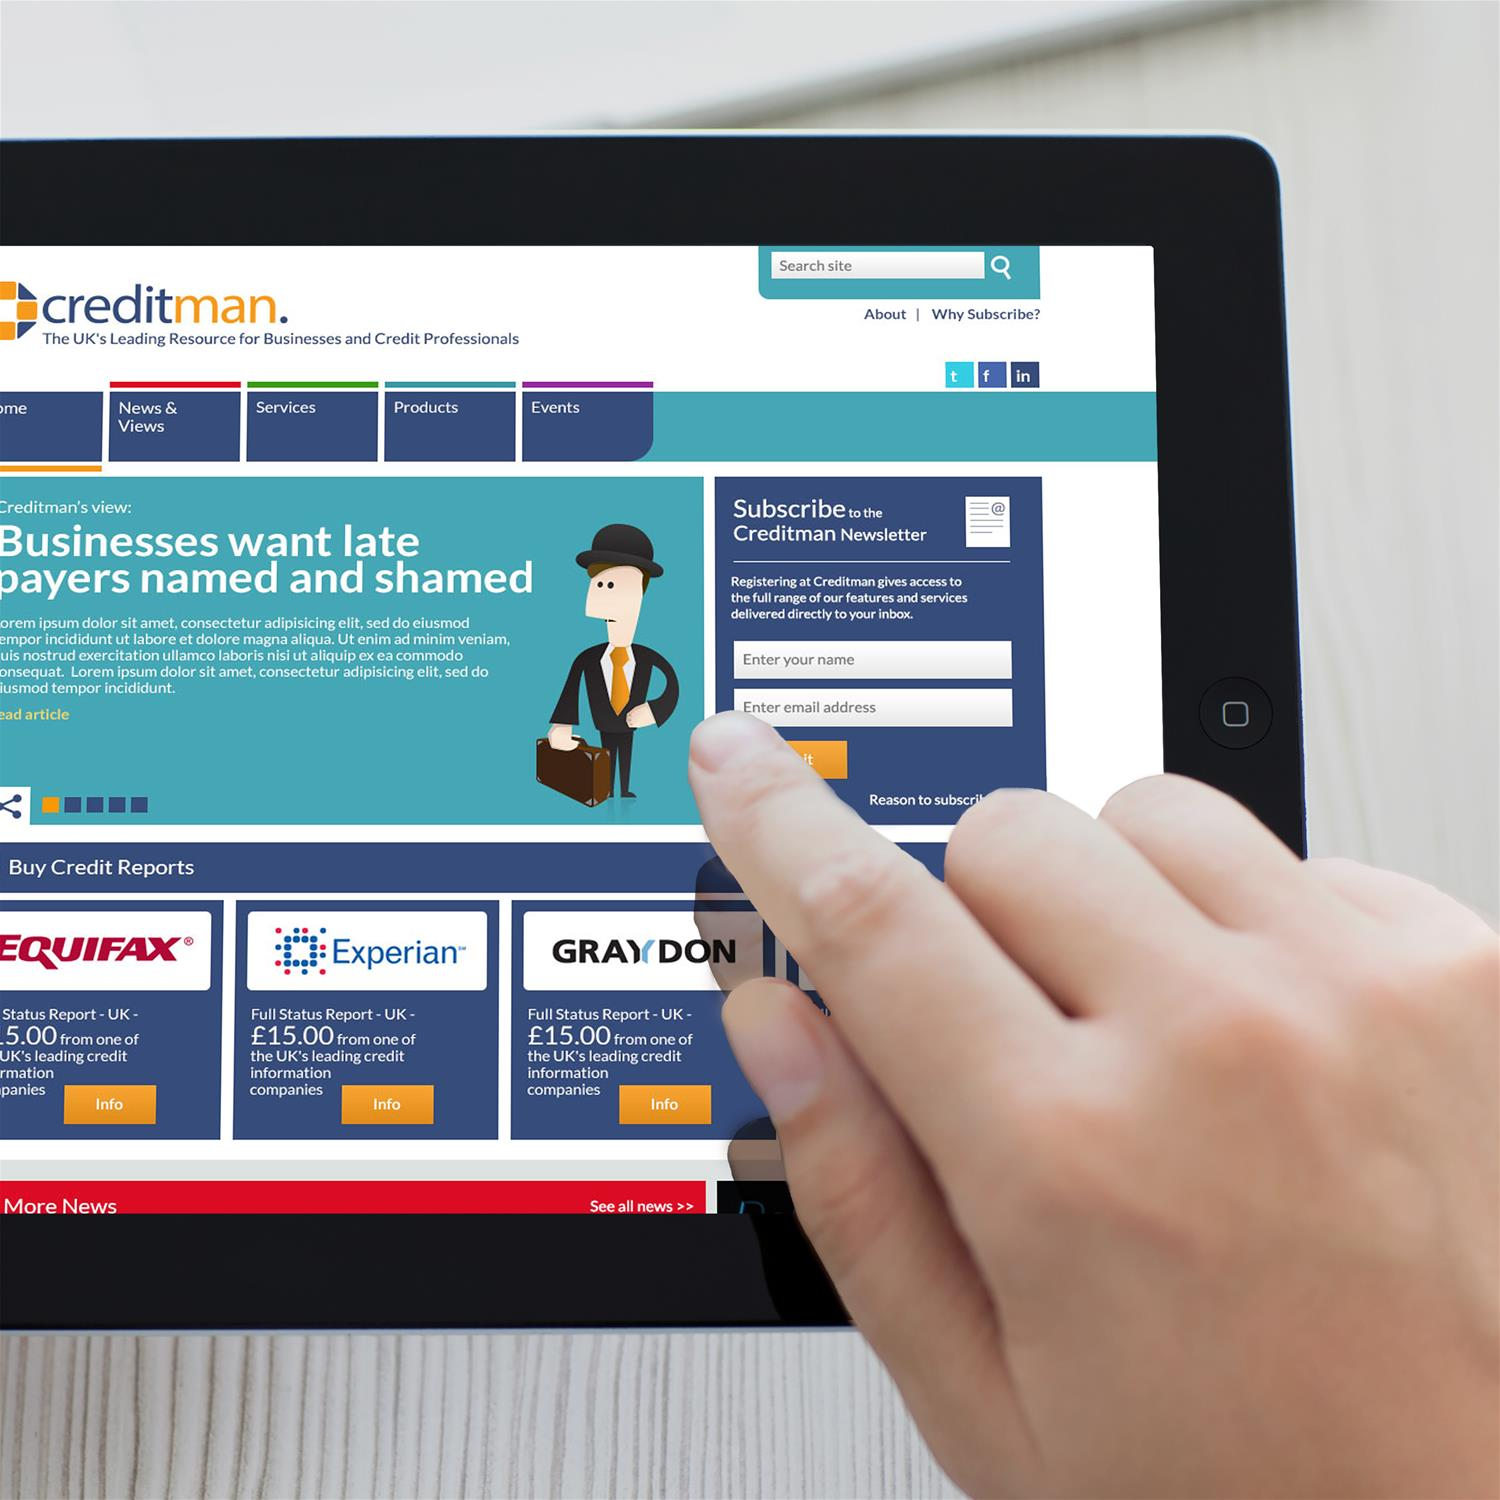 Creditman website on tablet